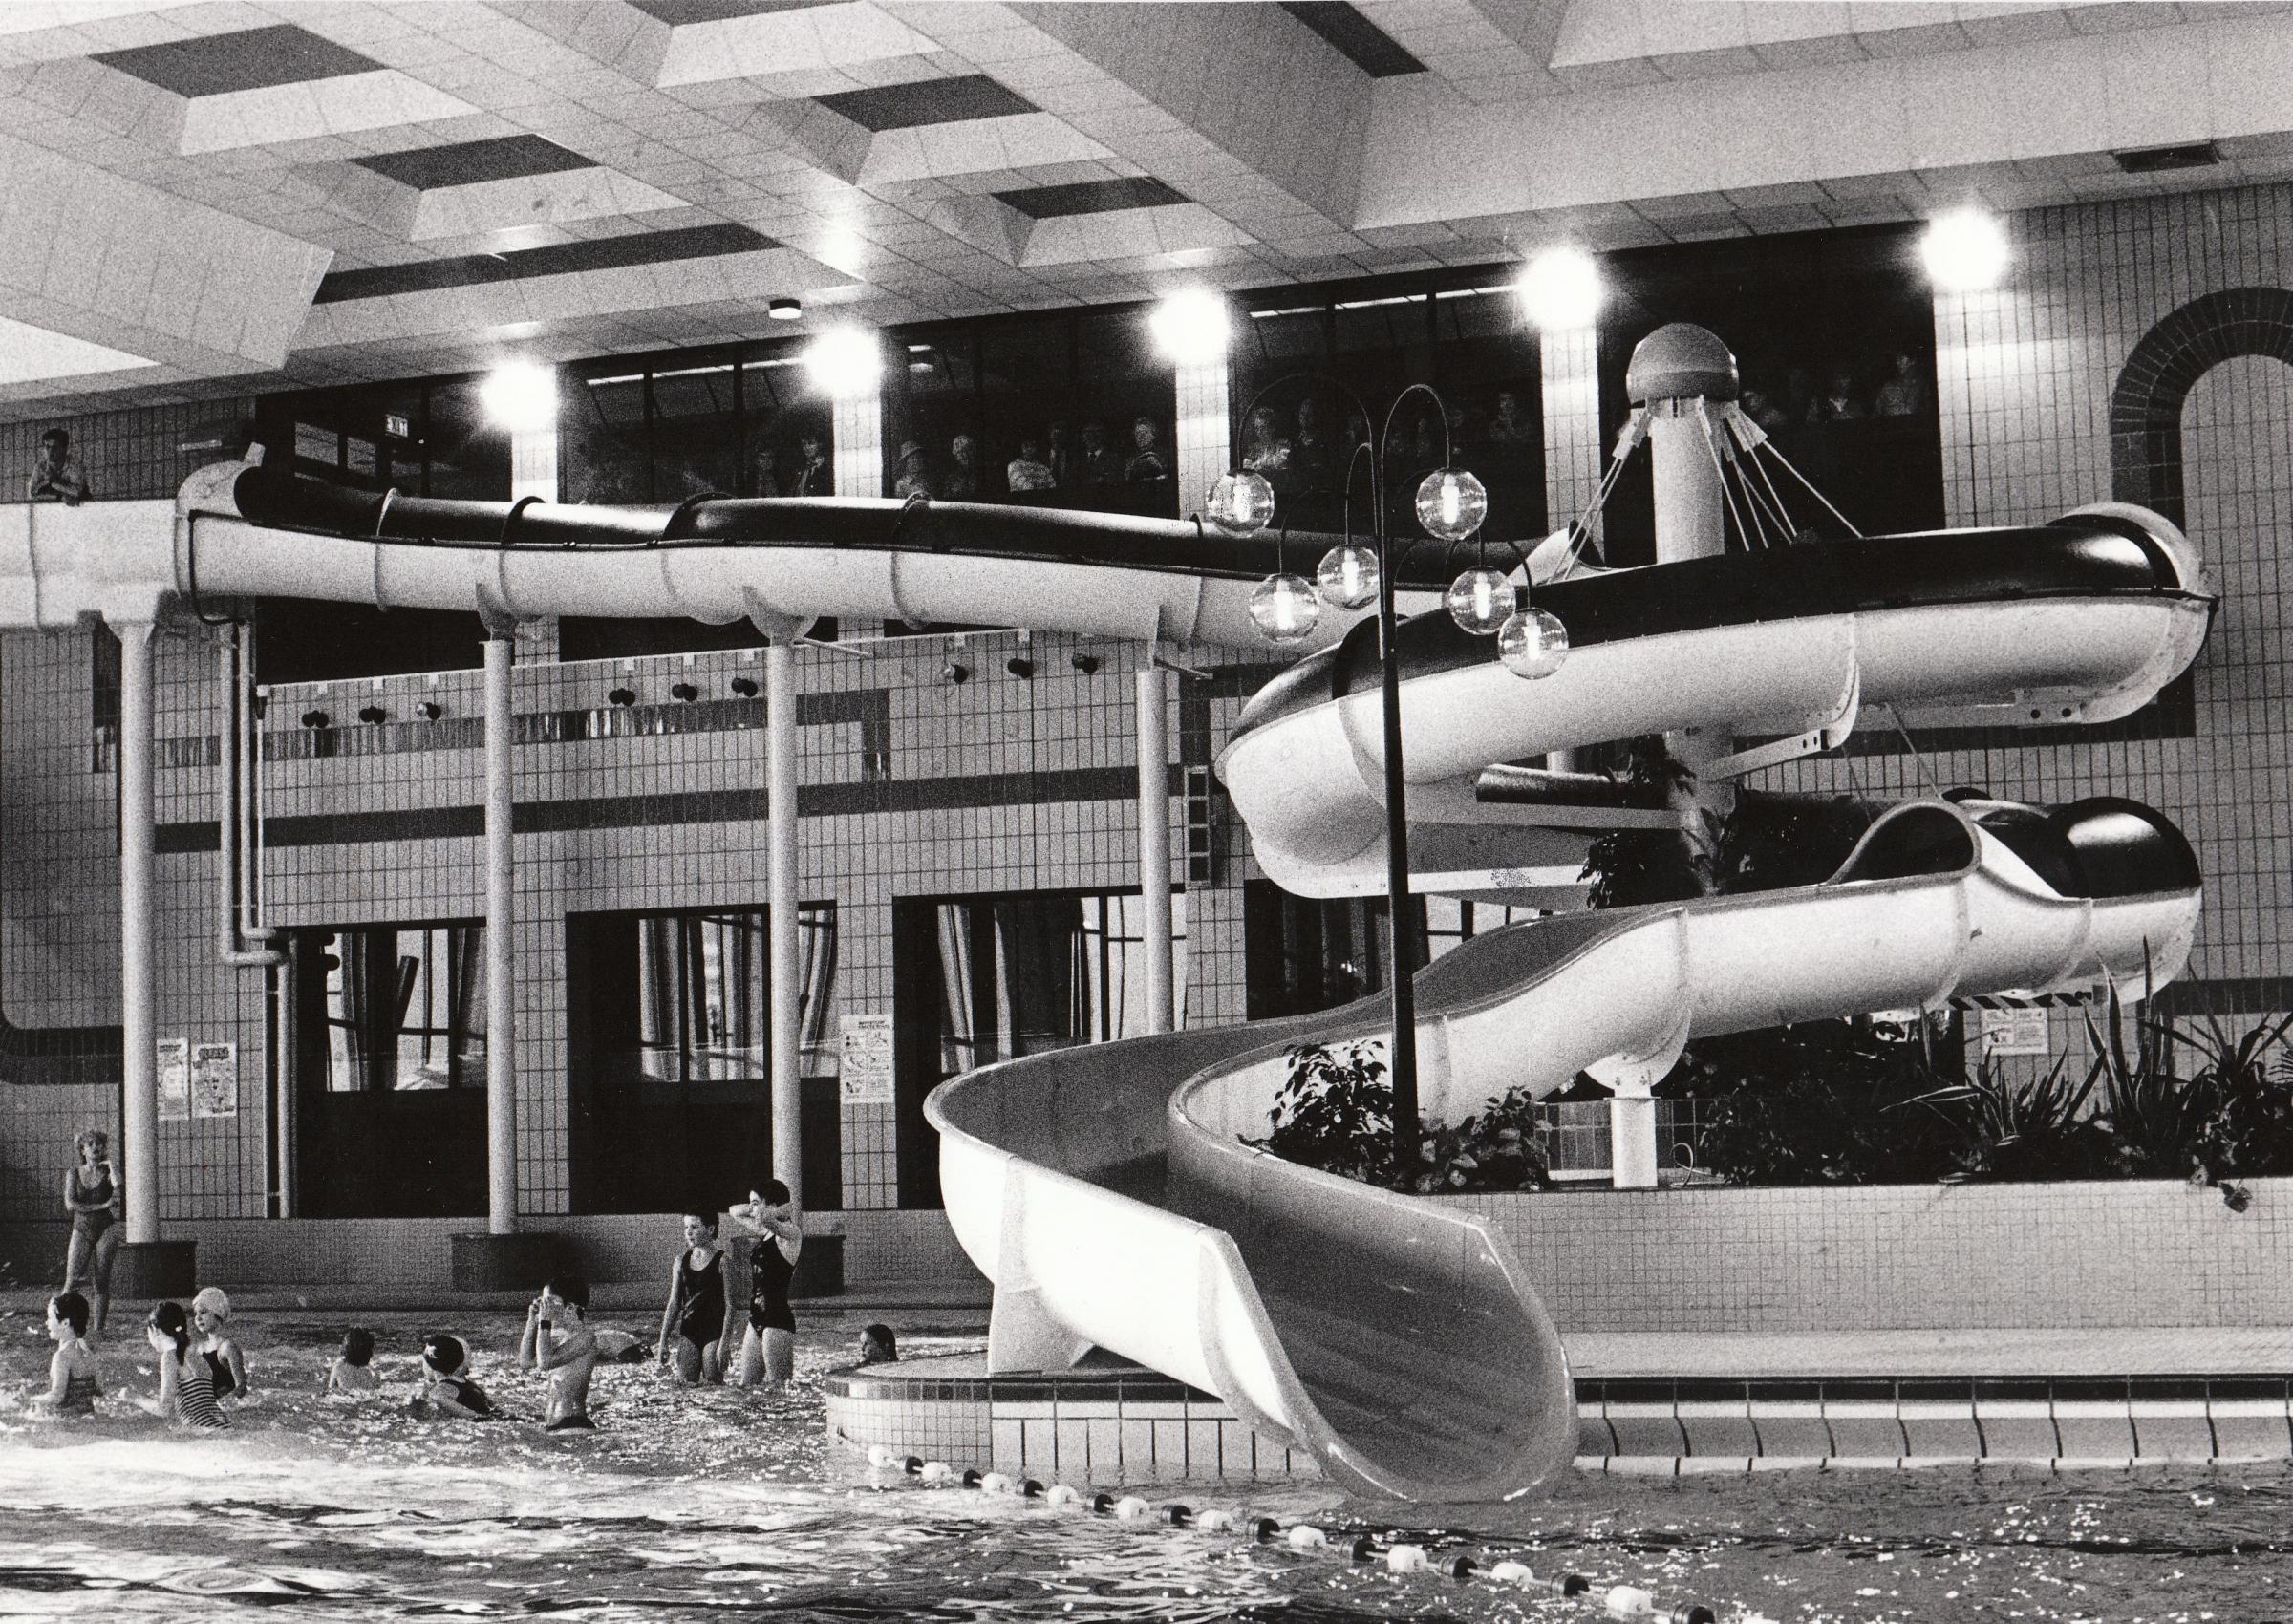 The new Hydro slide at the BIC swimming pool in 1986. Bournemouth Echo picture.